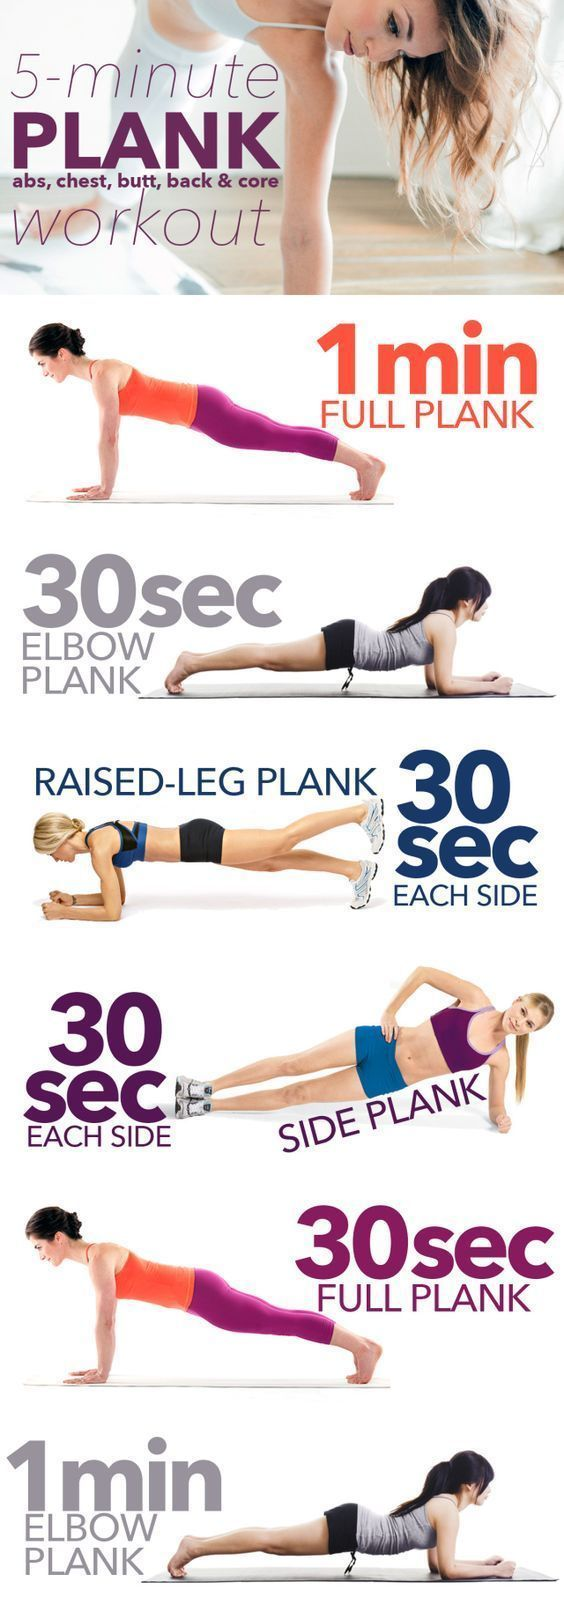 The 5-minute full-body plank workout that requires almost no movement... but you'll feel it working! | Workout | Pinterest | Plank Workout, Workout Fitness and… 1 Yoga Tip For a Tiny Belly...